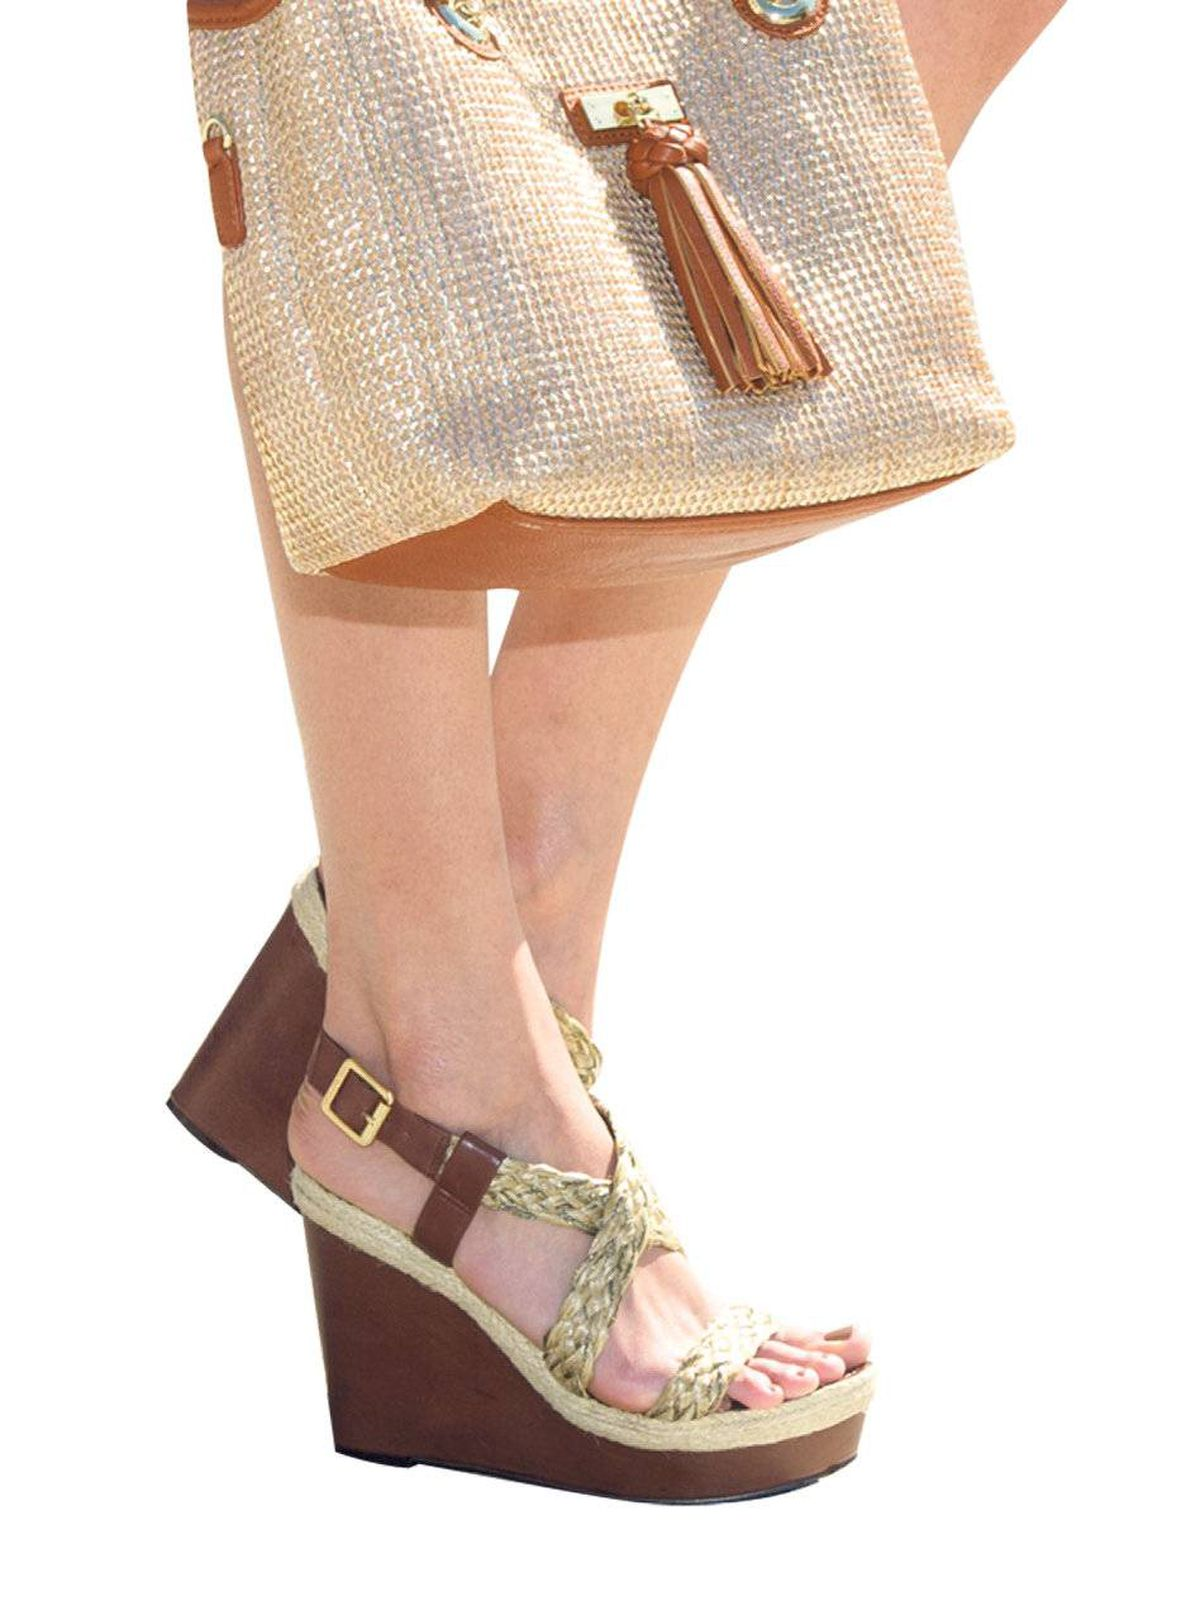 These wedges have a leg up on delicate heels. Vince Camuto wedges, $135 at Town Shoes. Aldo bag, $45.